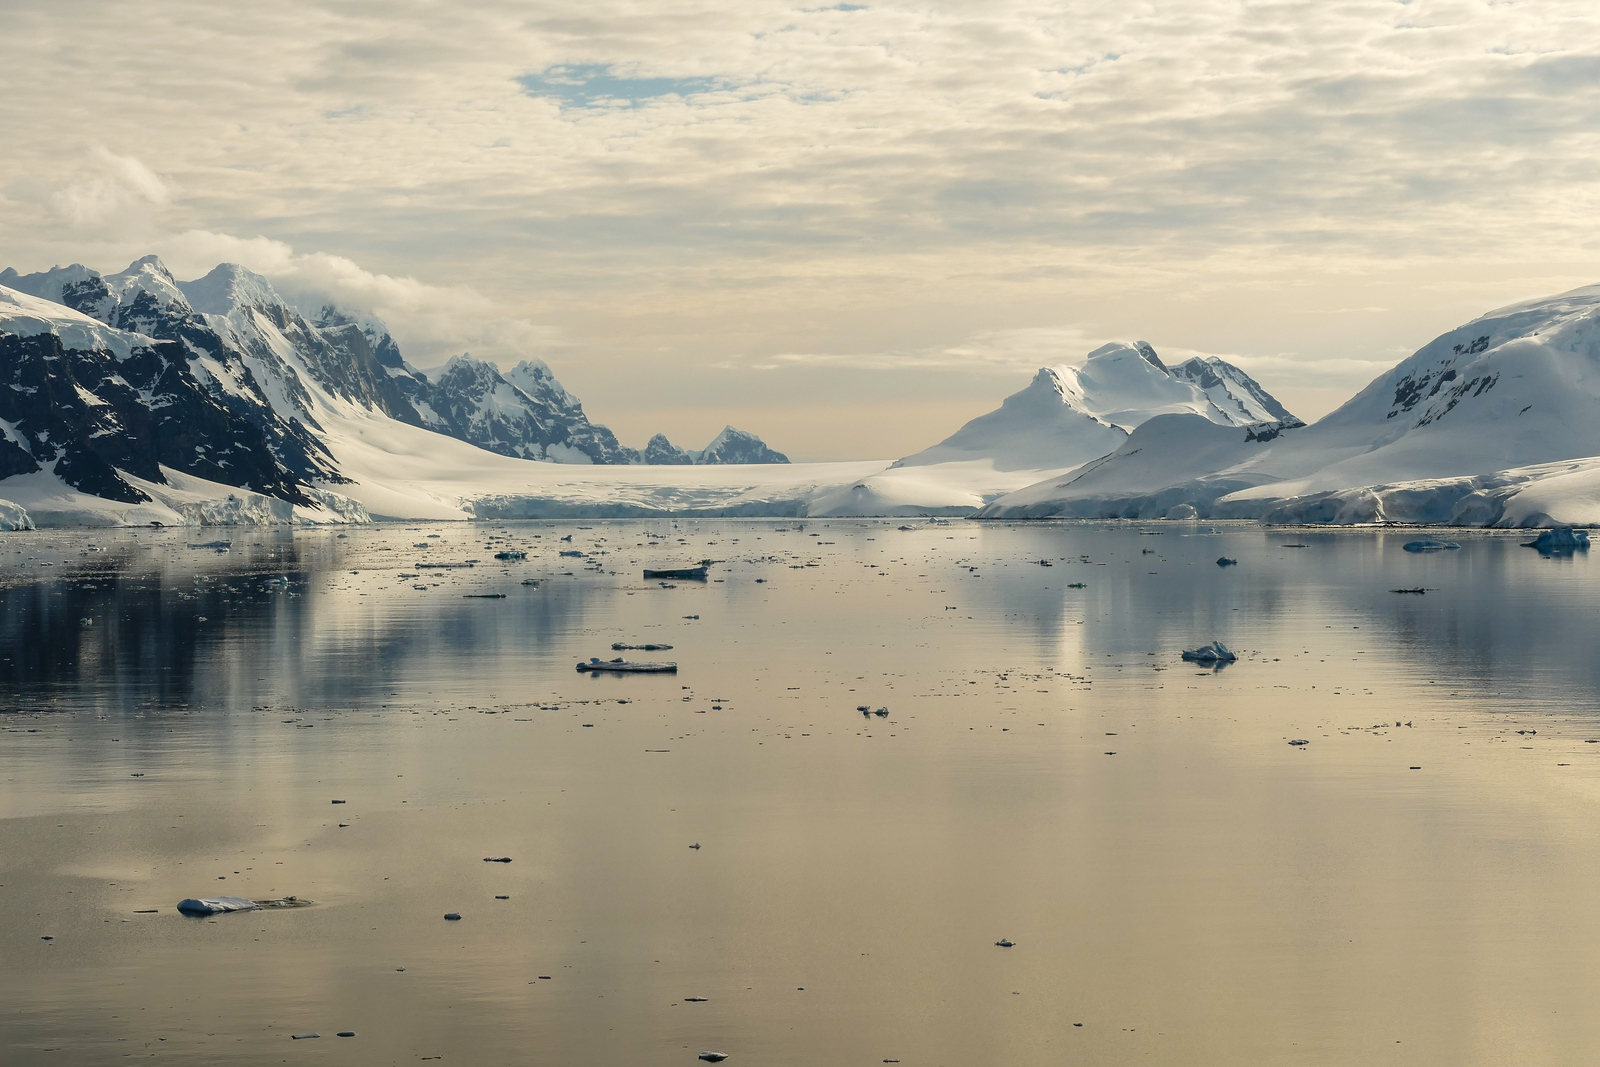 The scenery is stunning in Neumayer Channel. It's a beautiful Antarctica travel experience.